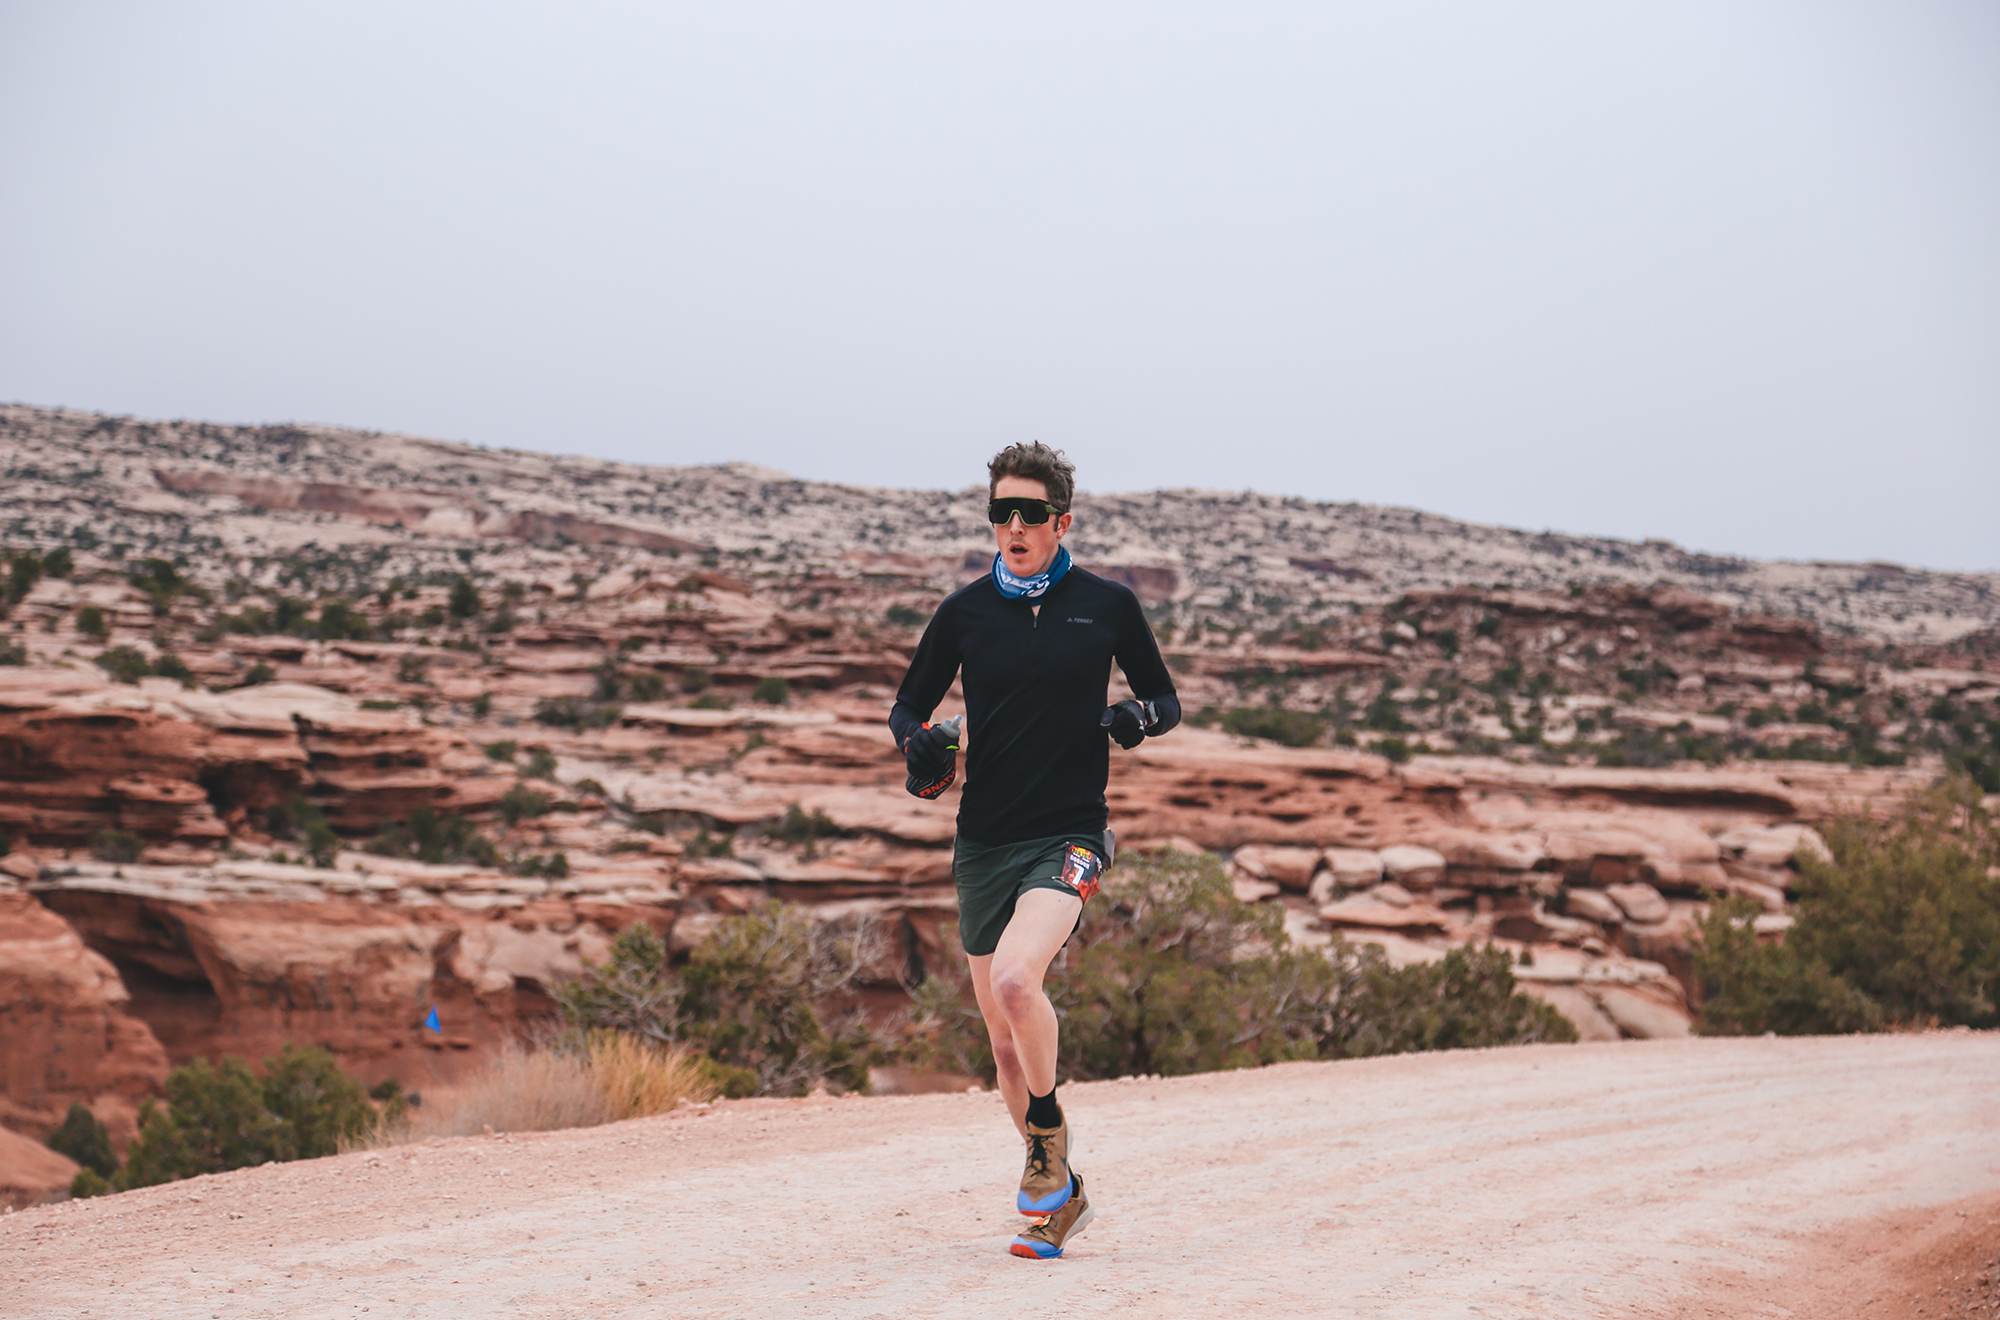 Gordon Gianniny goes on Blister's Off The Couch podcast to discuss the Moab Red Hot, Black Canyon Ultra, Saucony Switchback2, and The North Face Flight Vectiv.